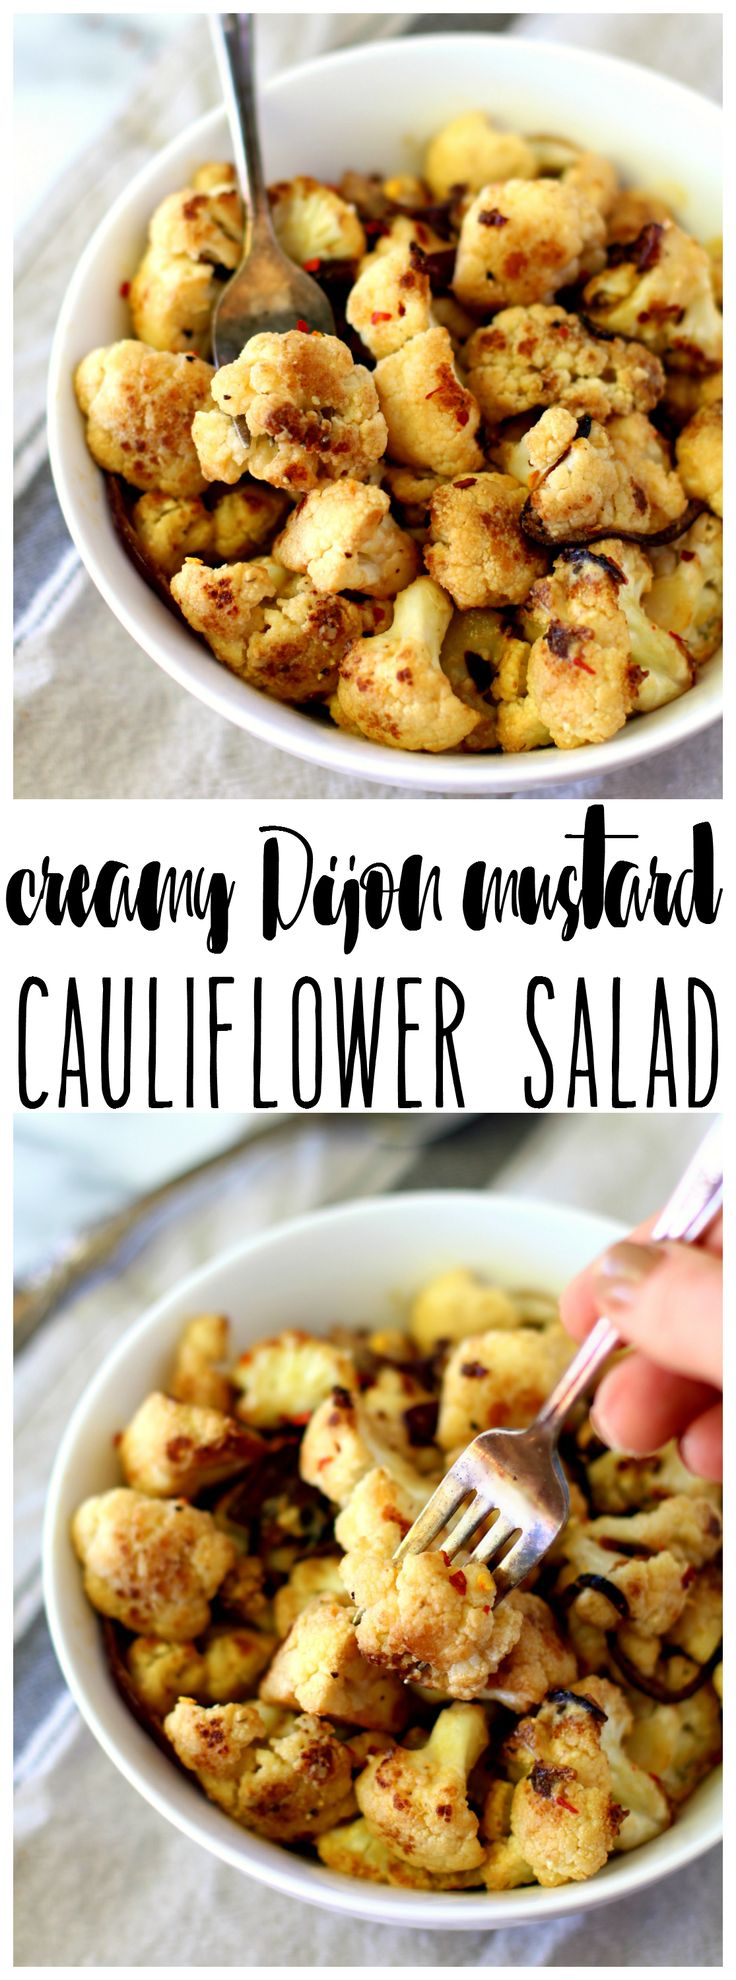 Creamy Dijon Mustard Cauliflower Salad! A pan-fried cauliflower superfood dish tossed in a vegan, gluten-free creamy Dijon mustard sauce.